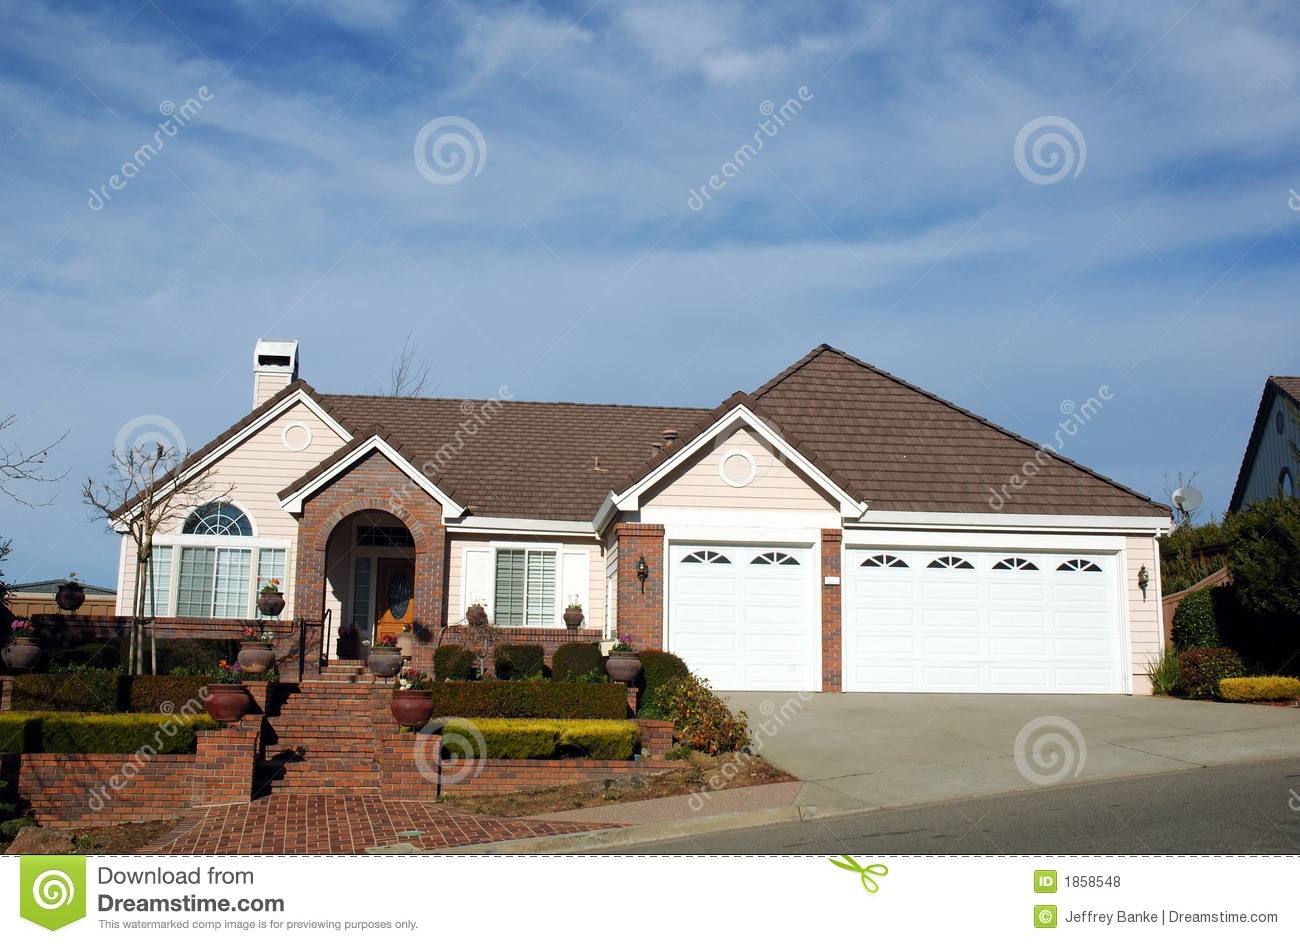 1990 S Home In Northern California Royalty Free Stock